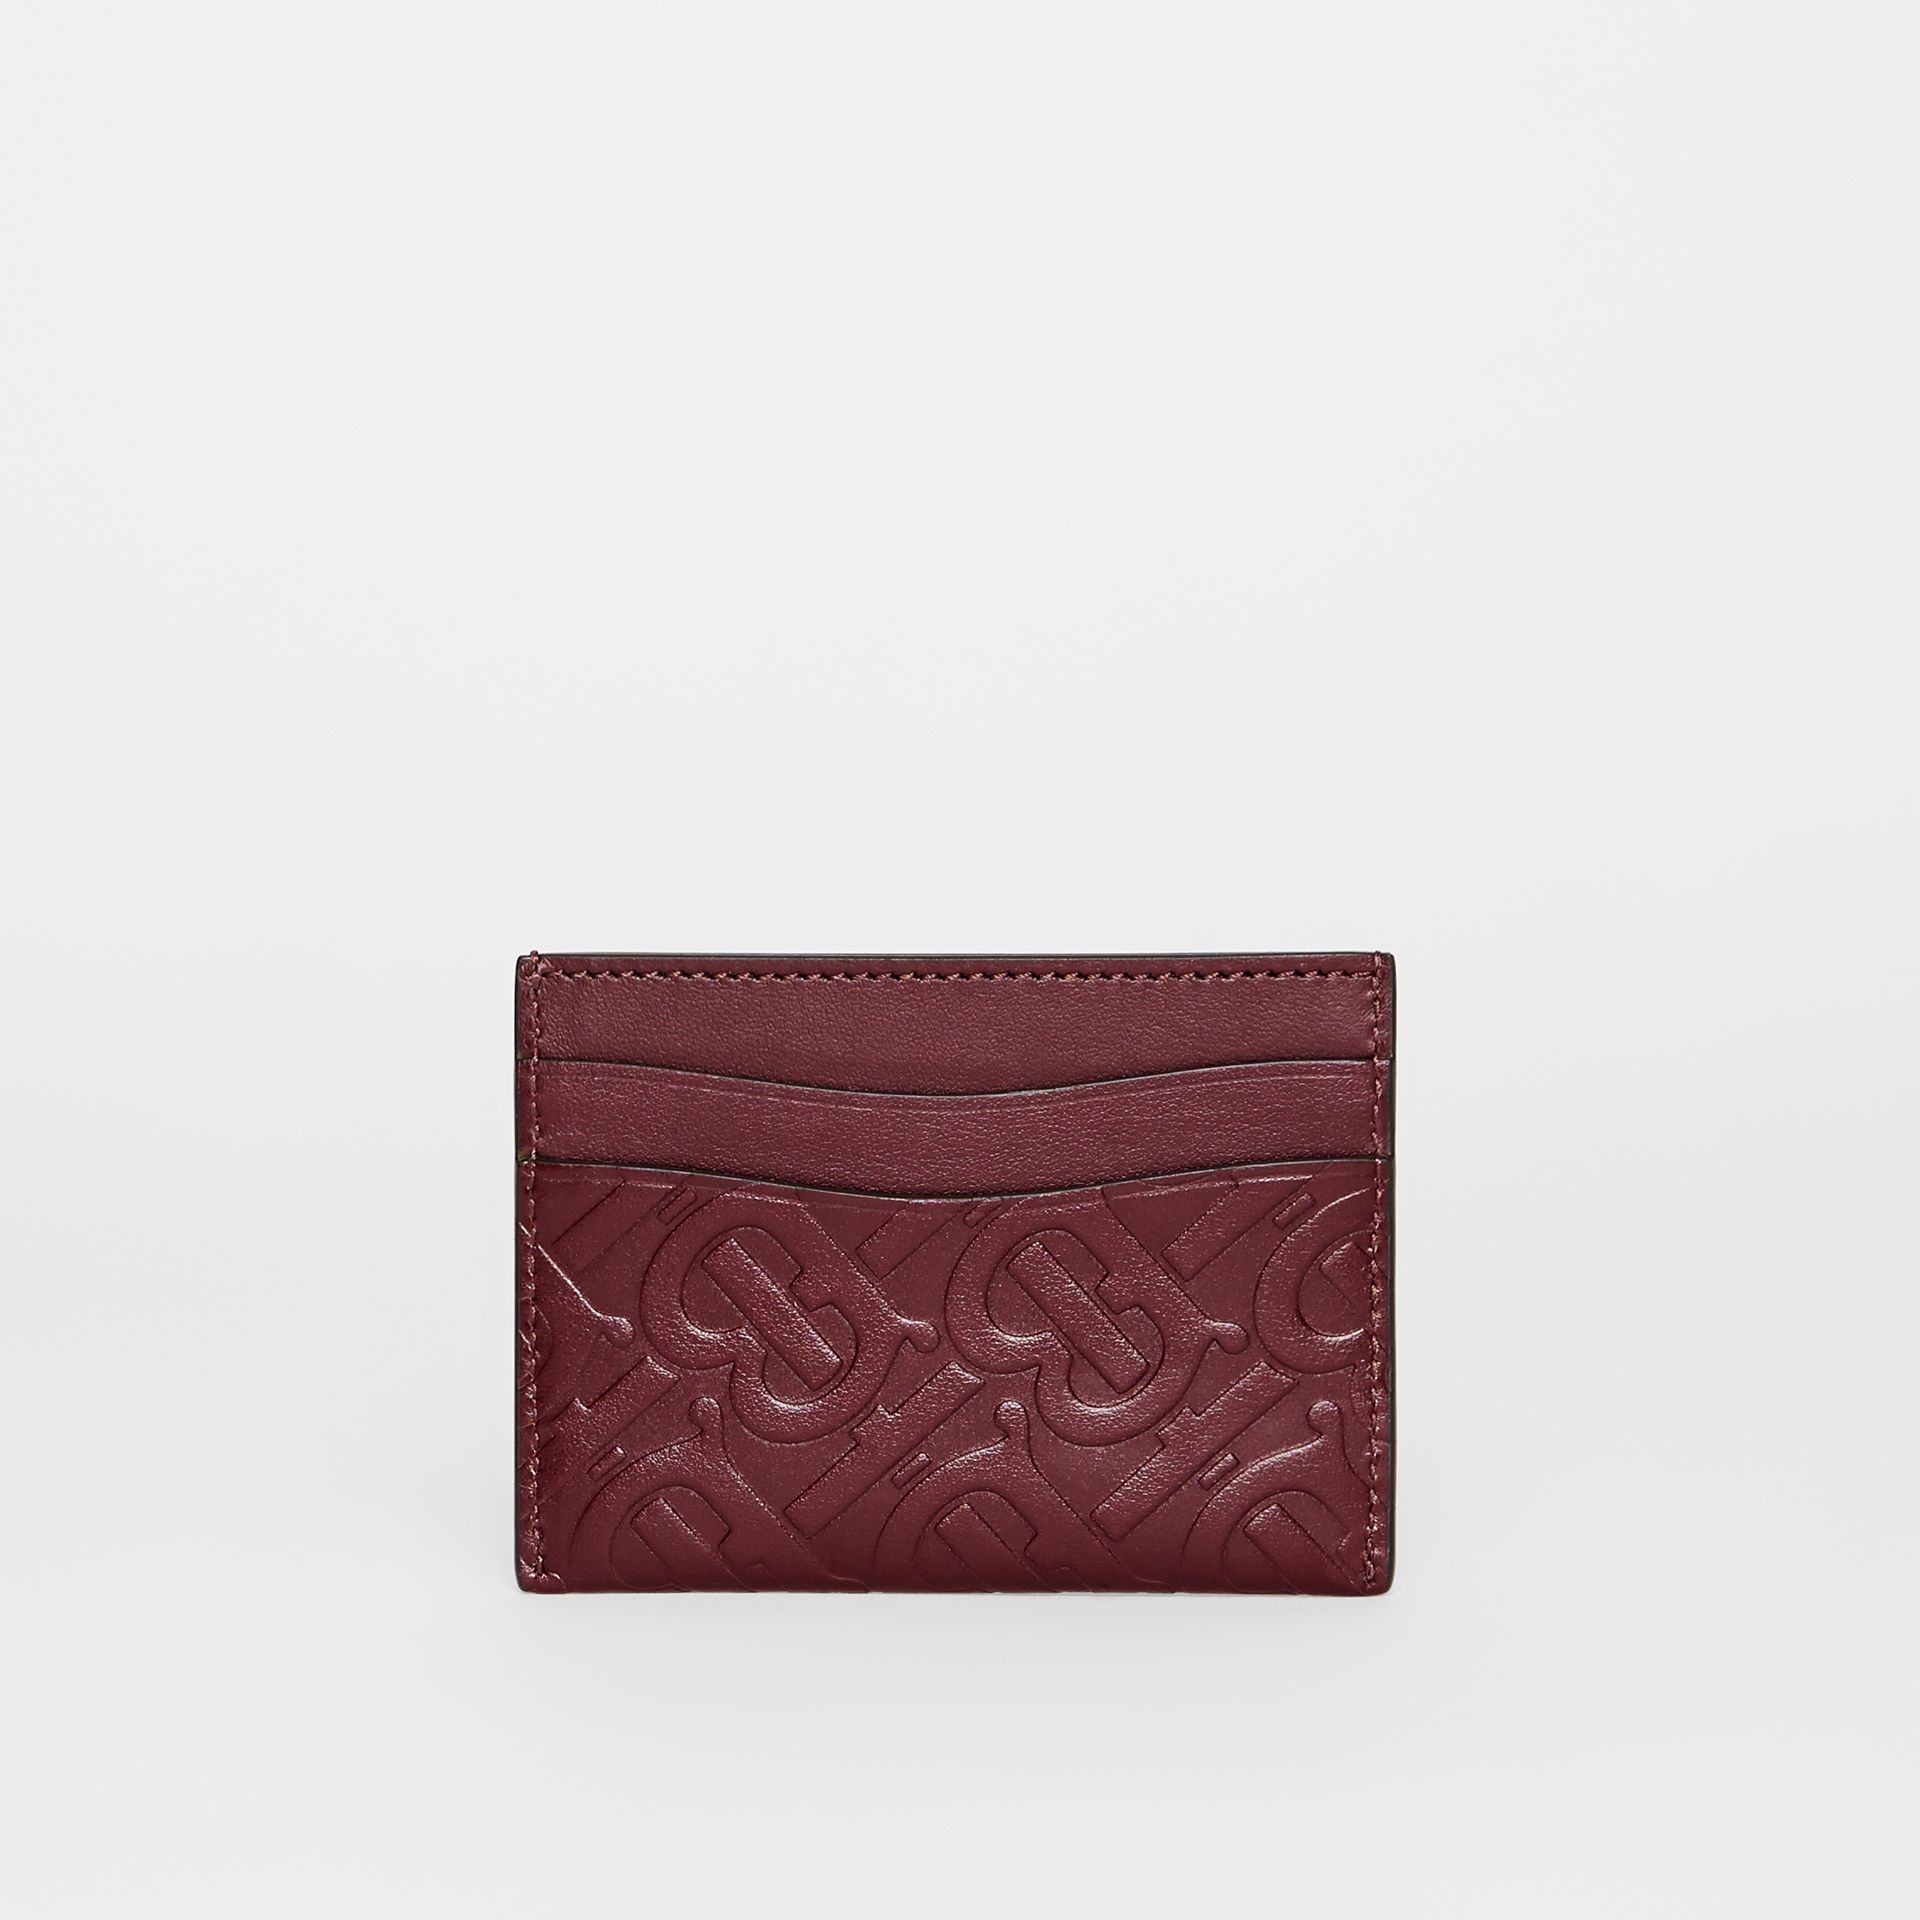 Porte-cartes en cuir Monogram (Oxblood) - Femme | Burberry - photo de la galerie 4